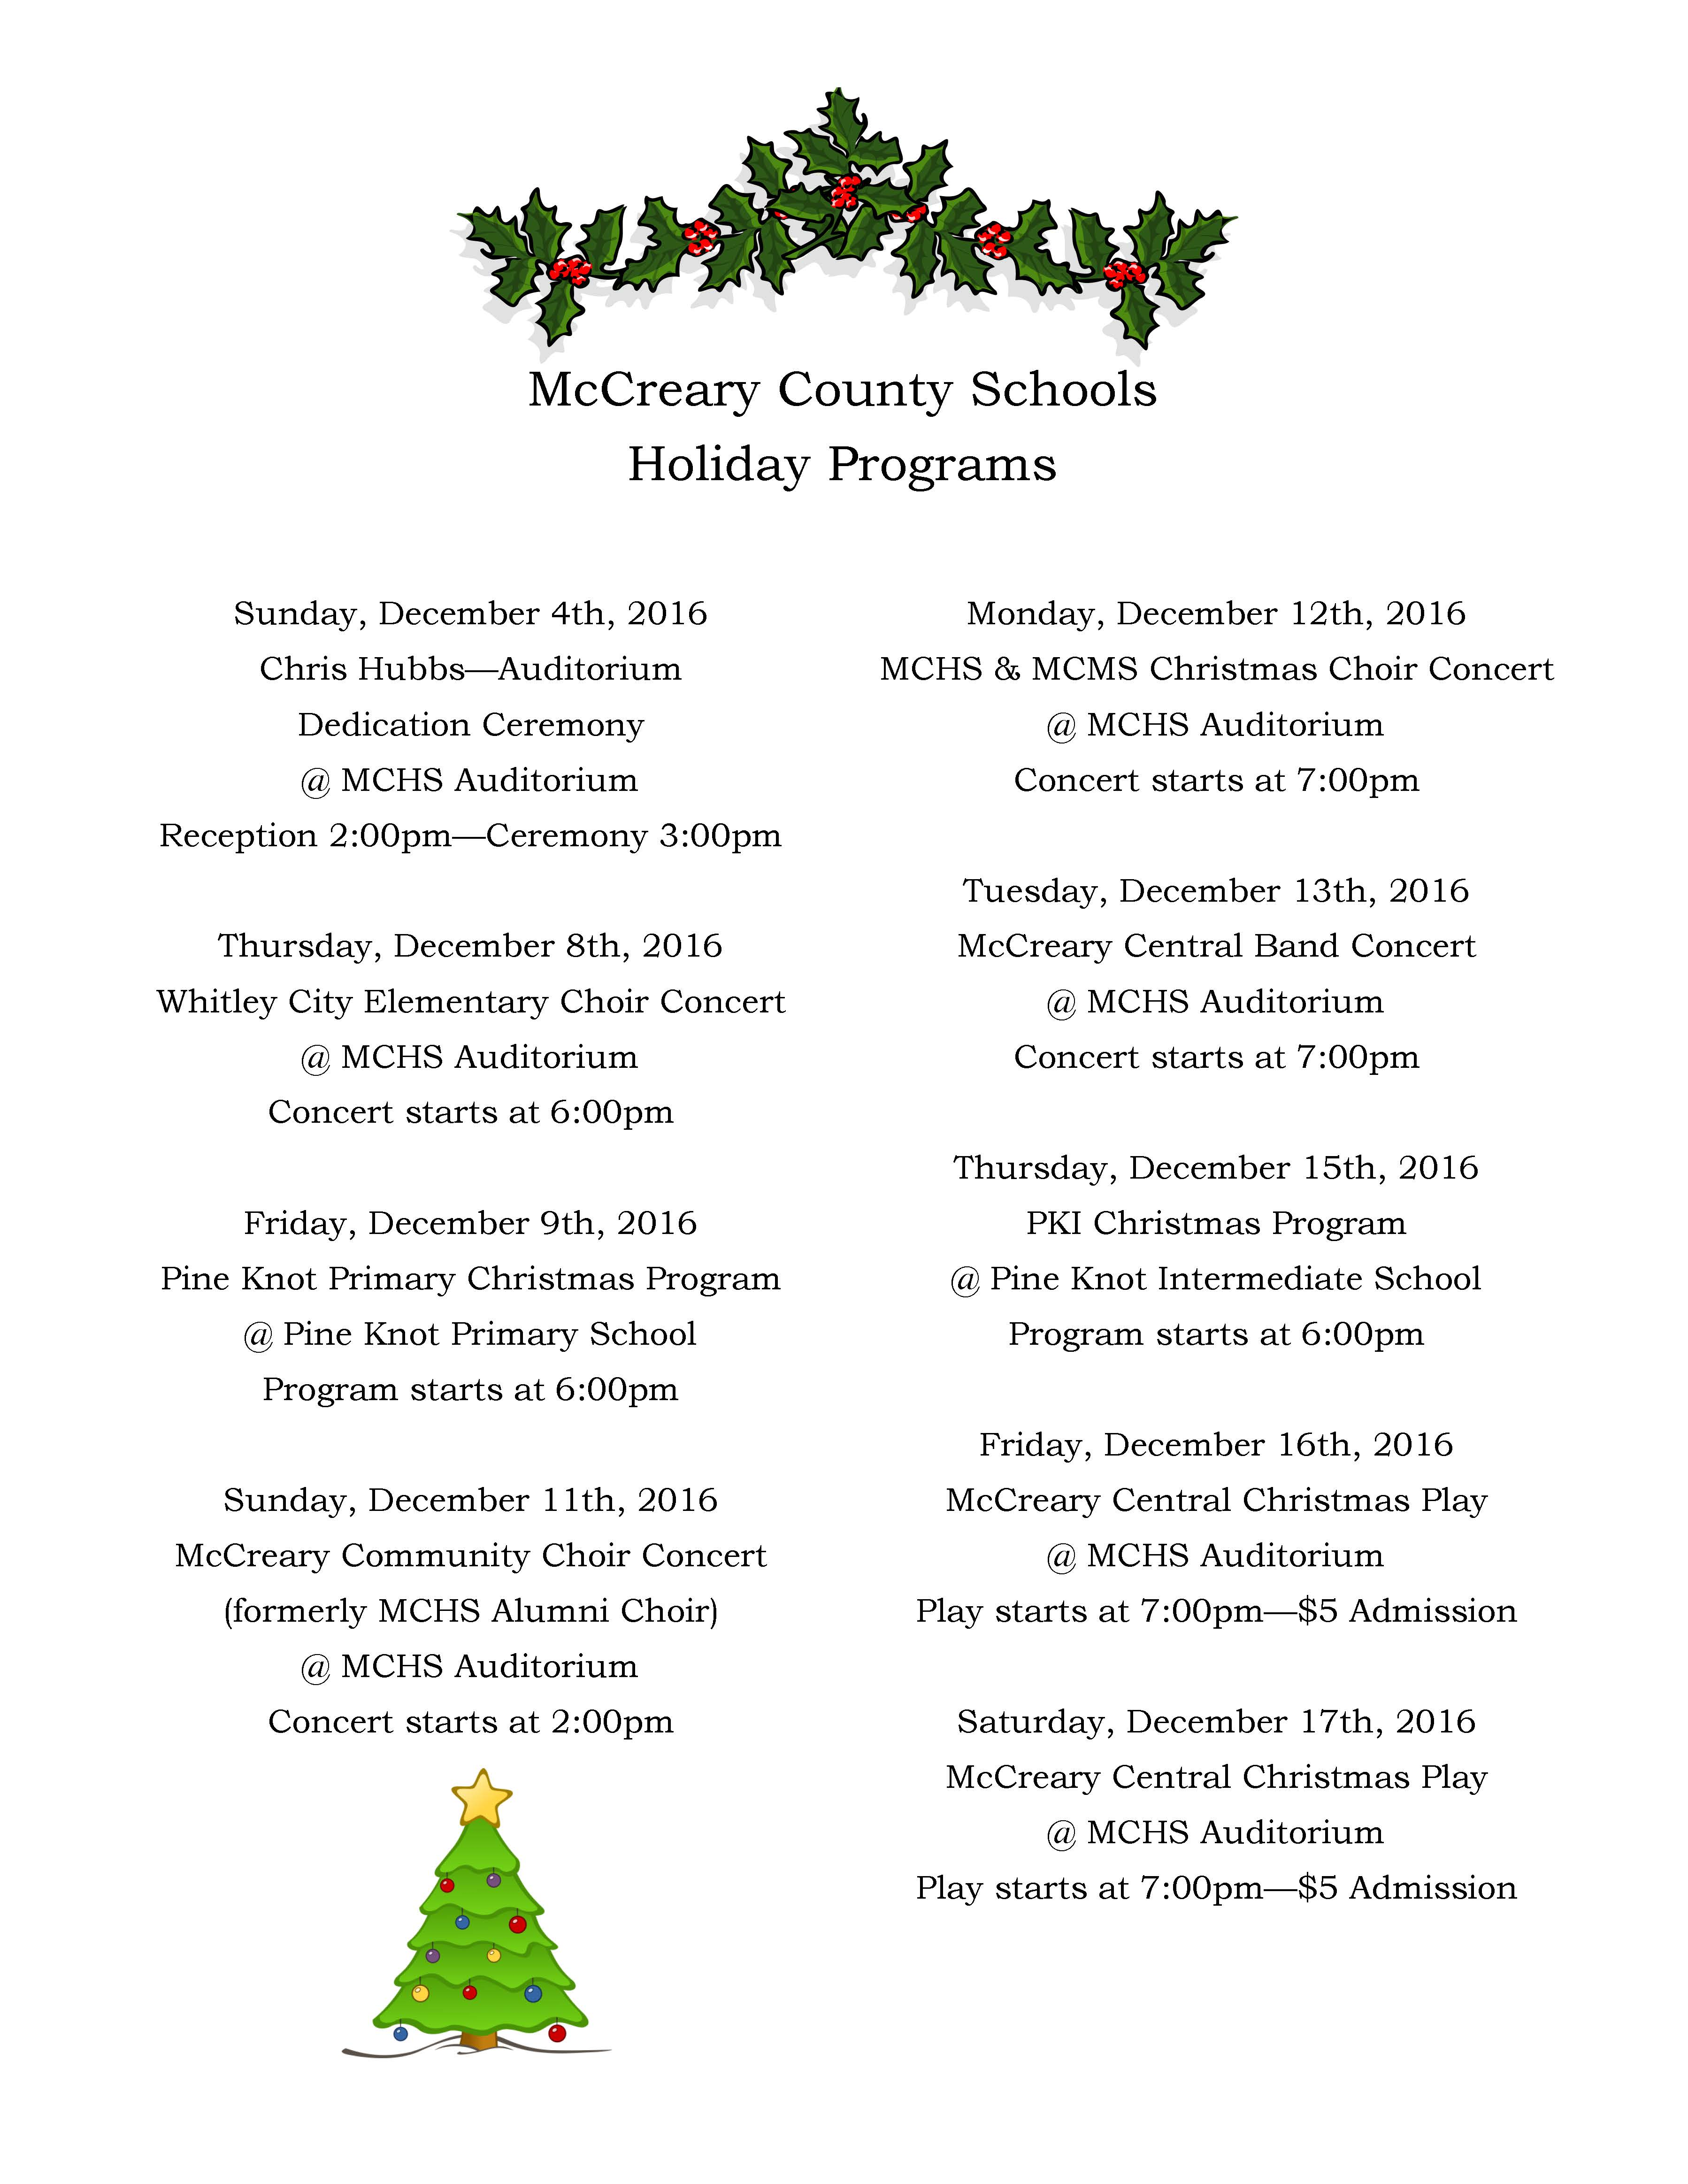 McCreary County School District Holiday Program